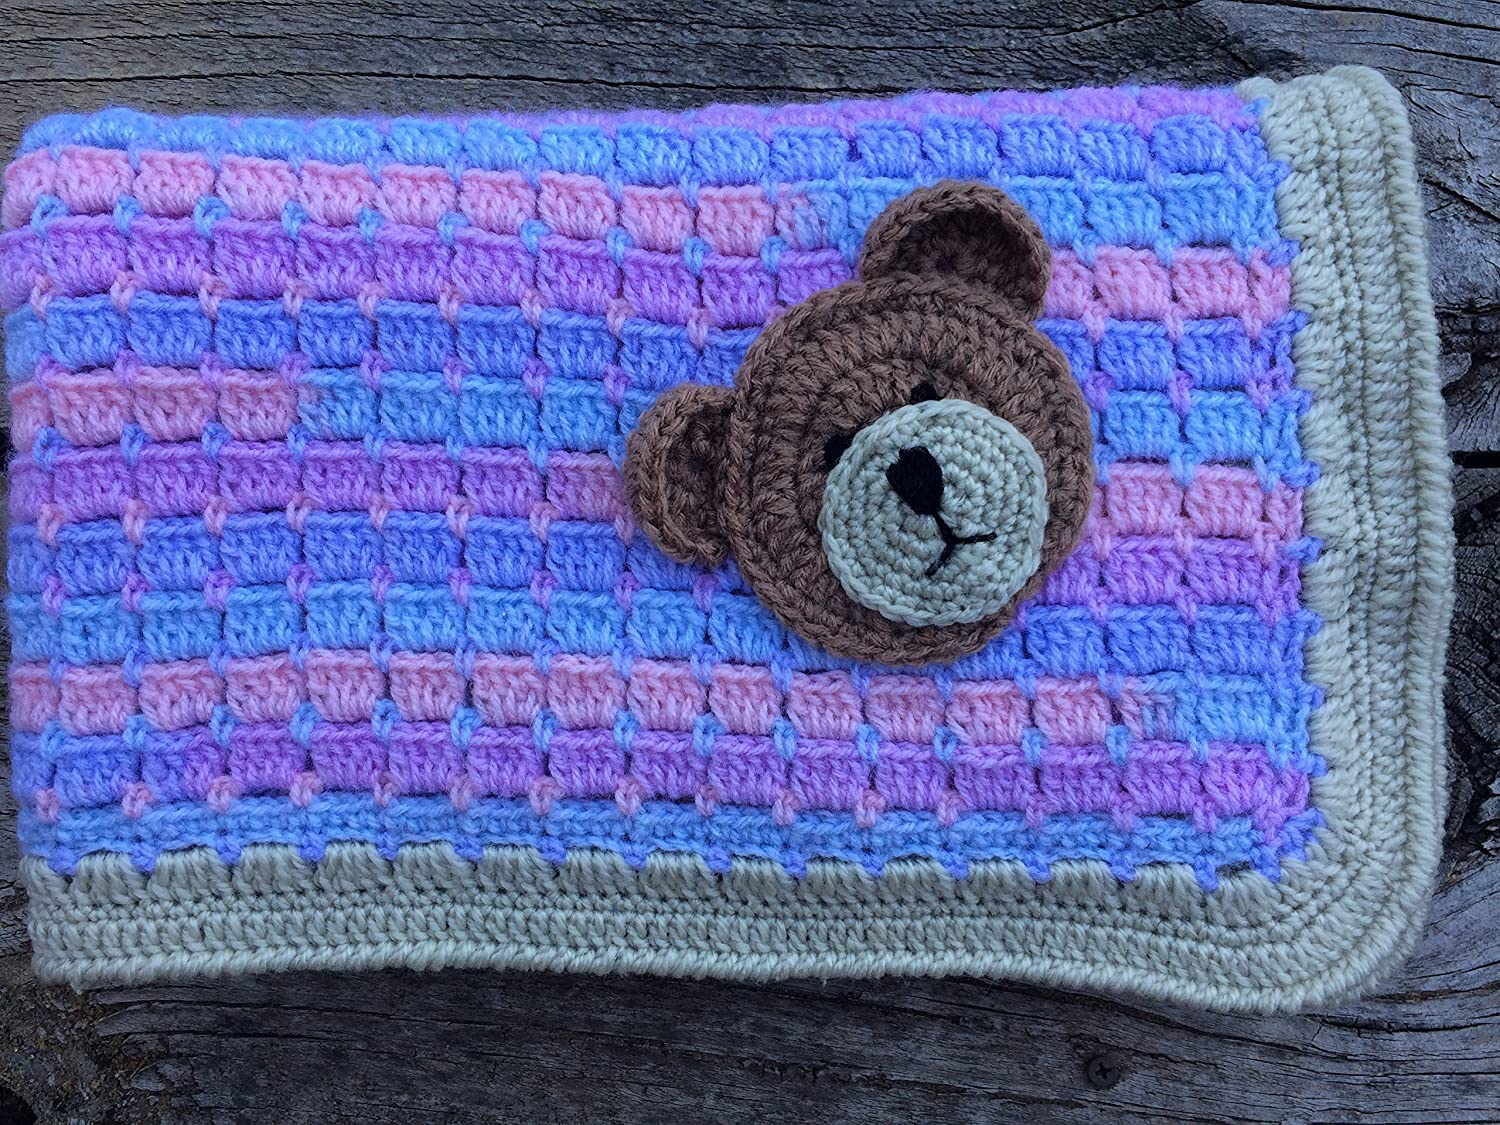 Sleep Tight Teddy Bear Blanket Pattern Crochet Pattern | 1125x1500